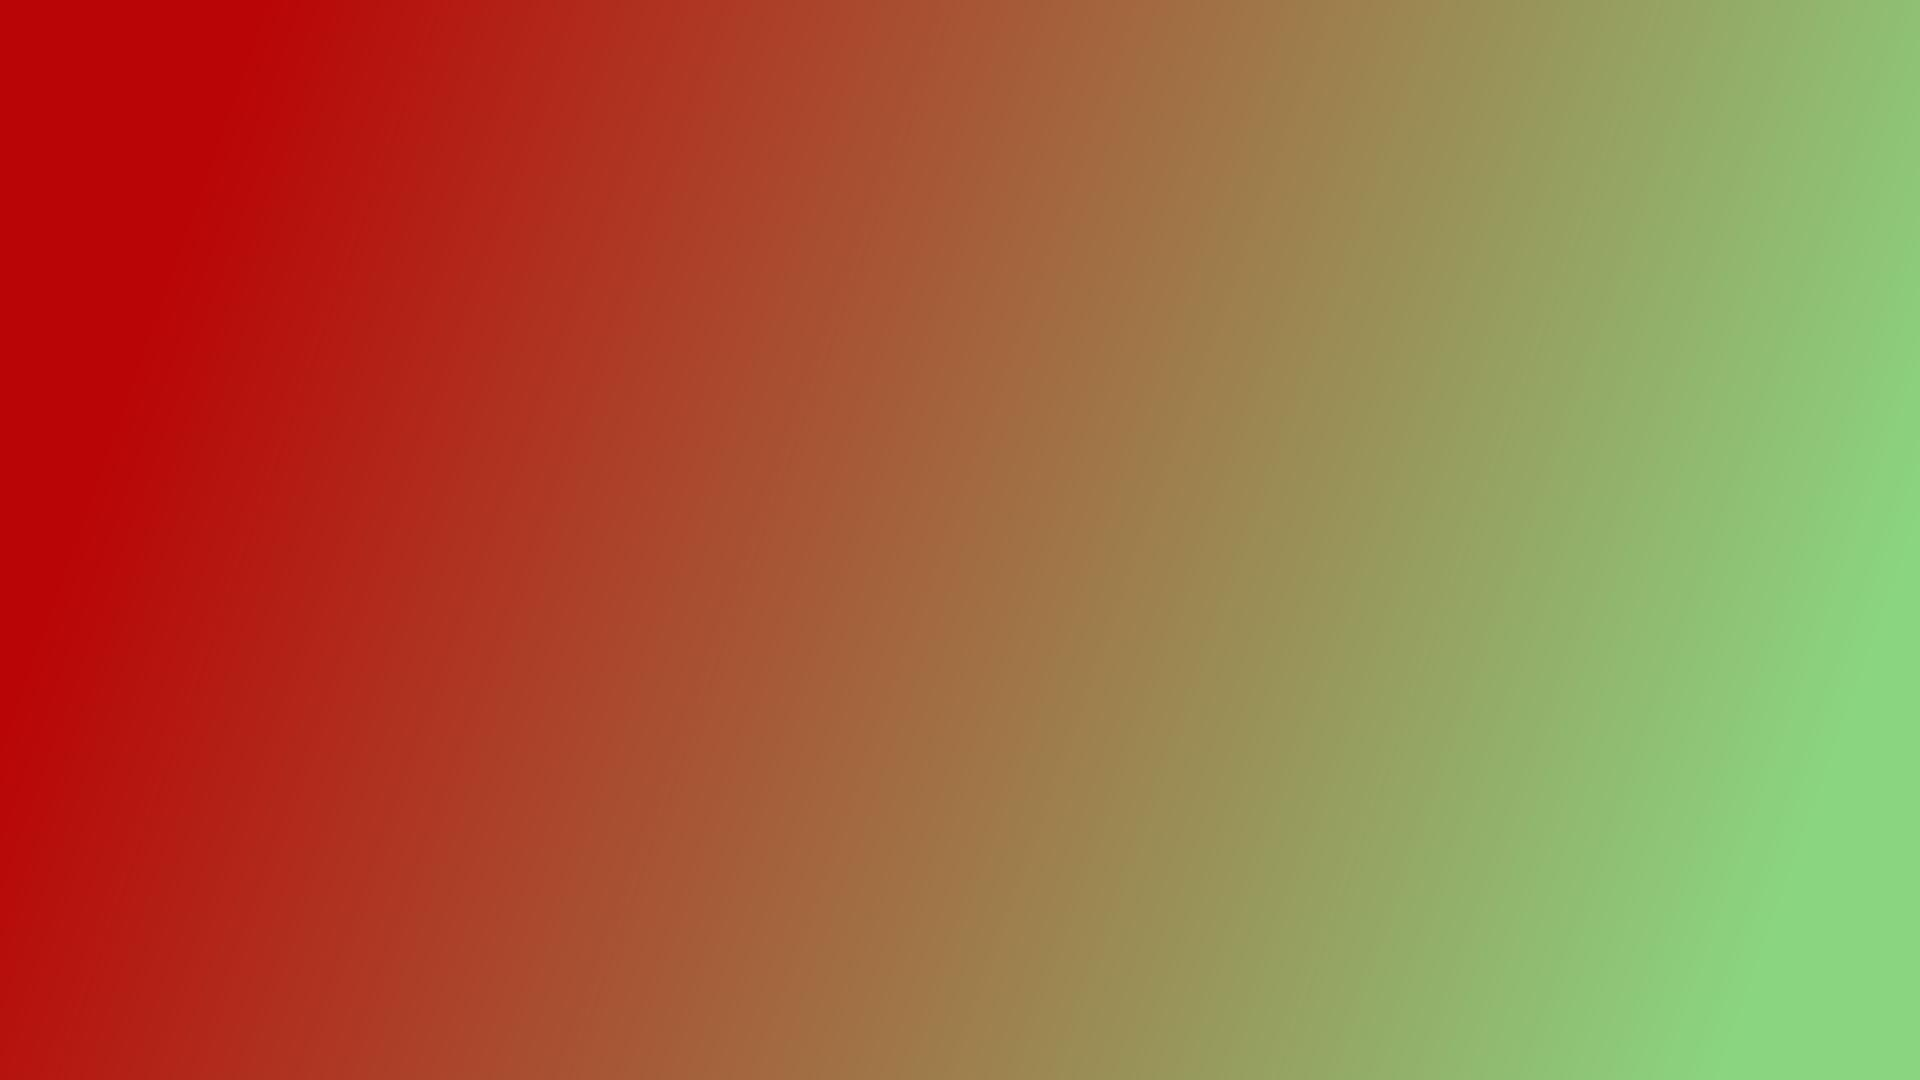 Red Zone Gradient